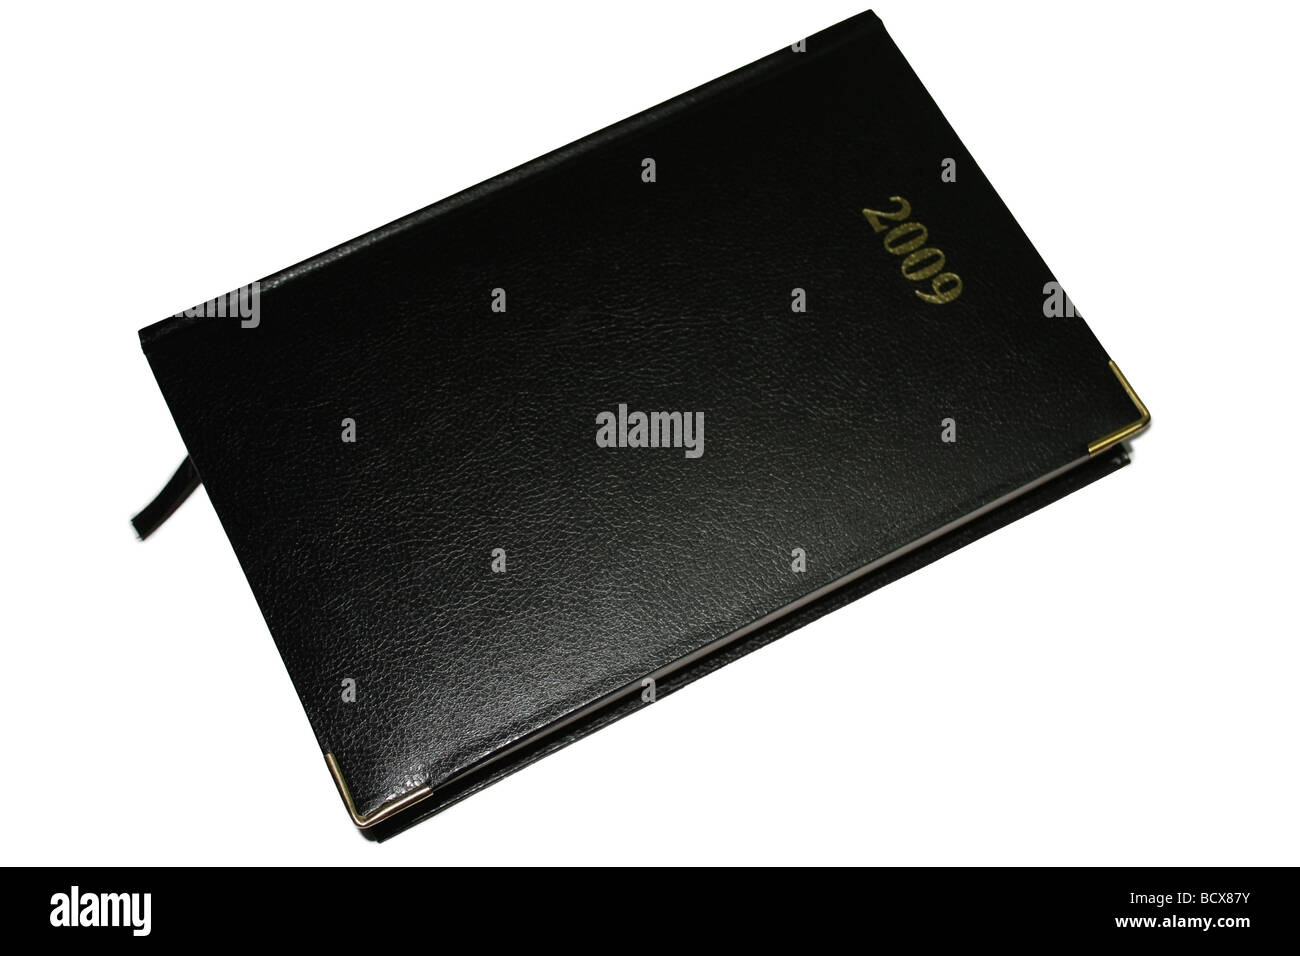 Diary given for Alamy Employees - Stock Image